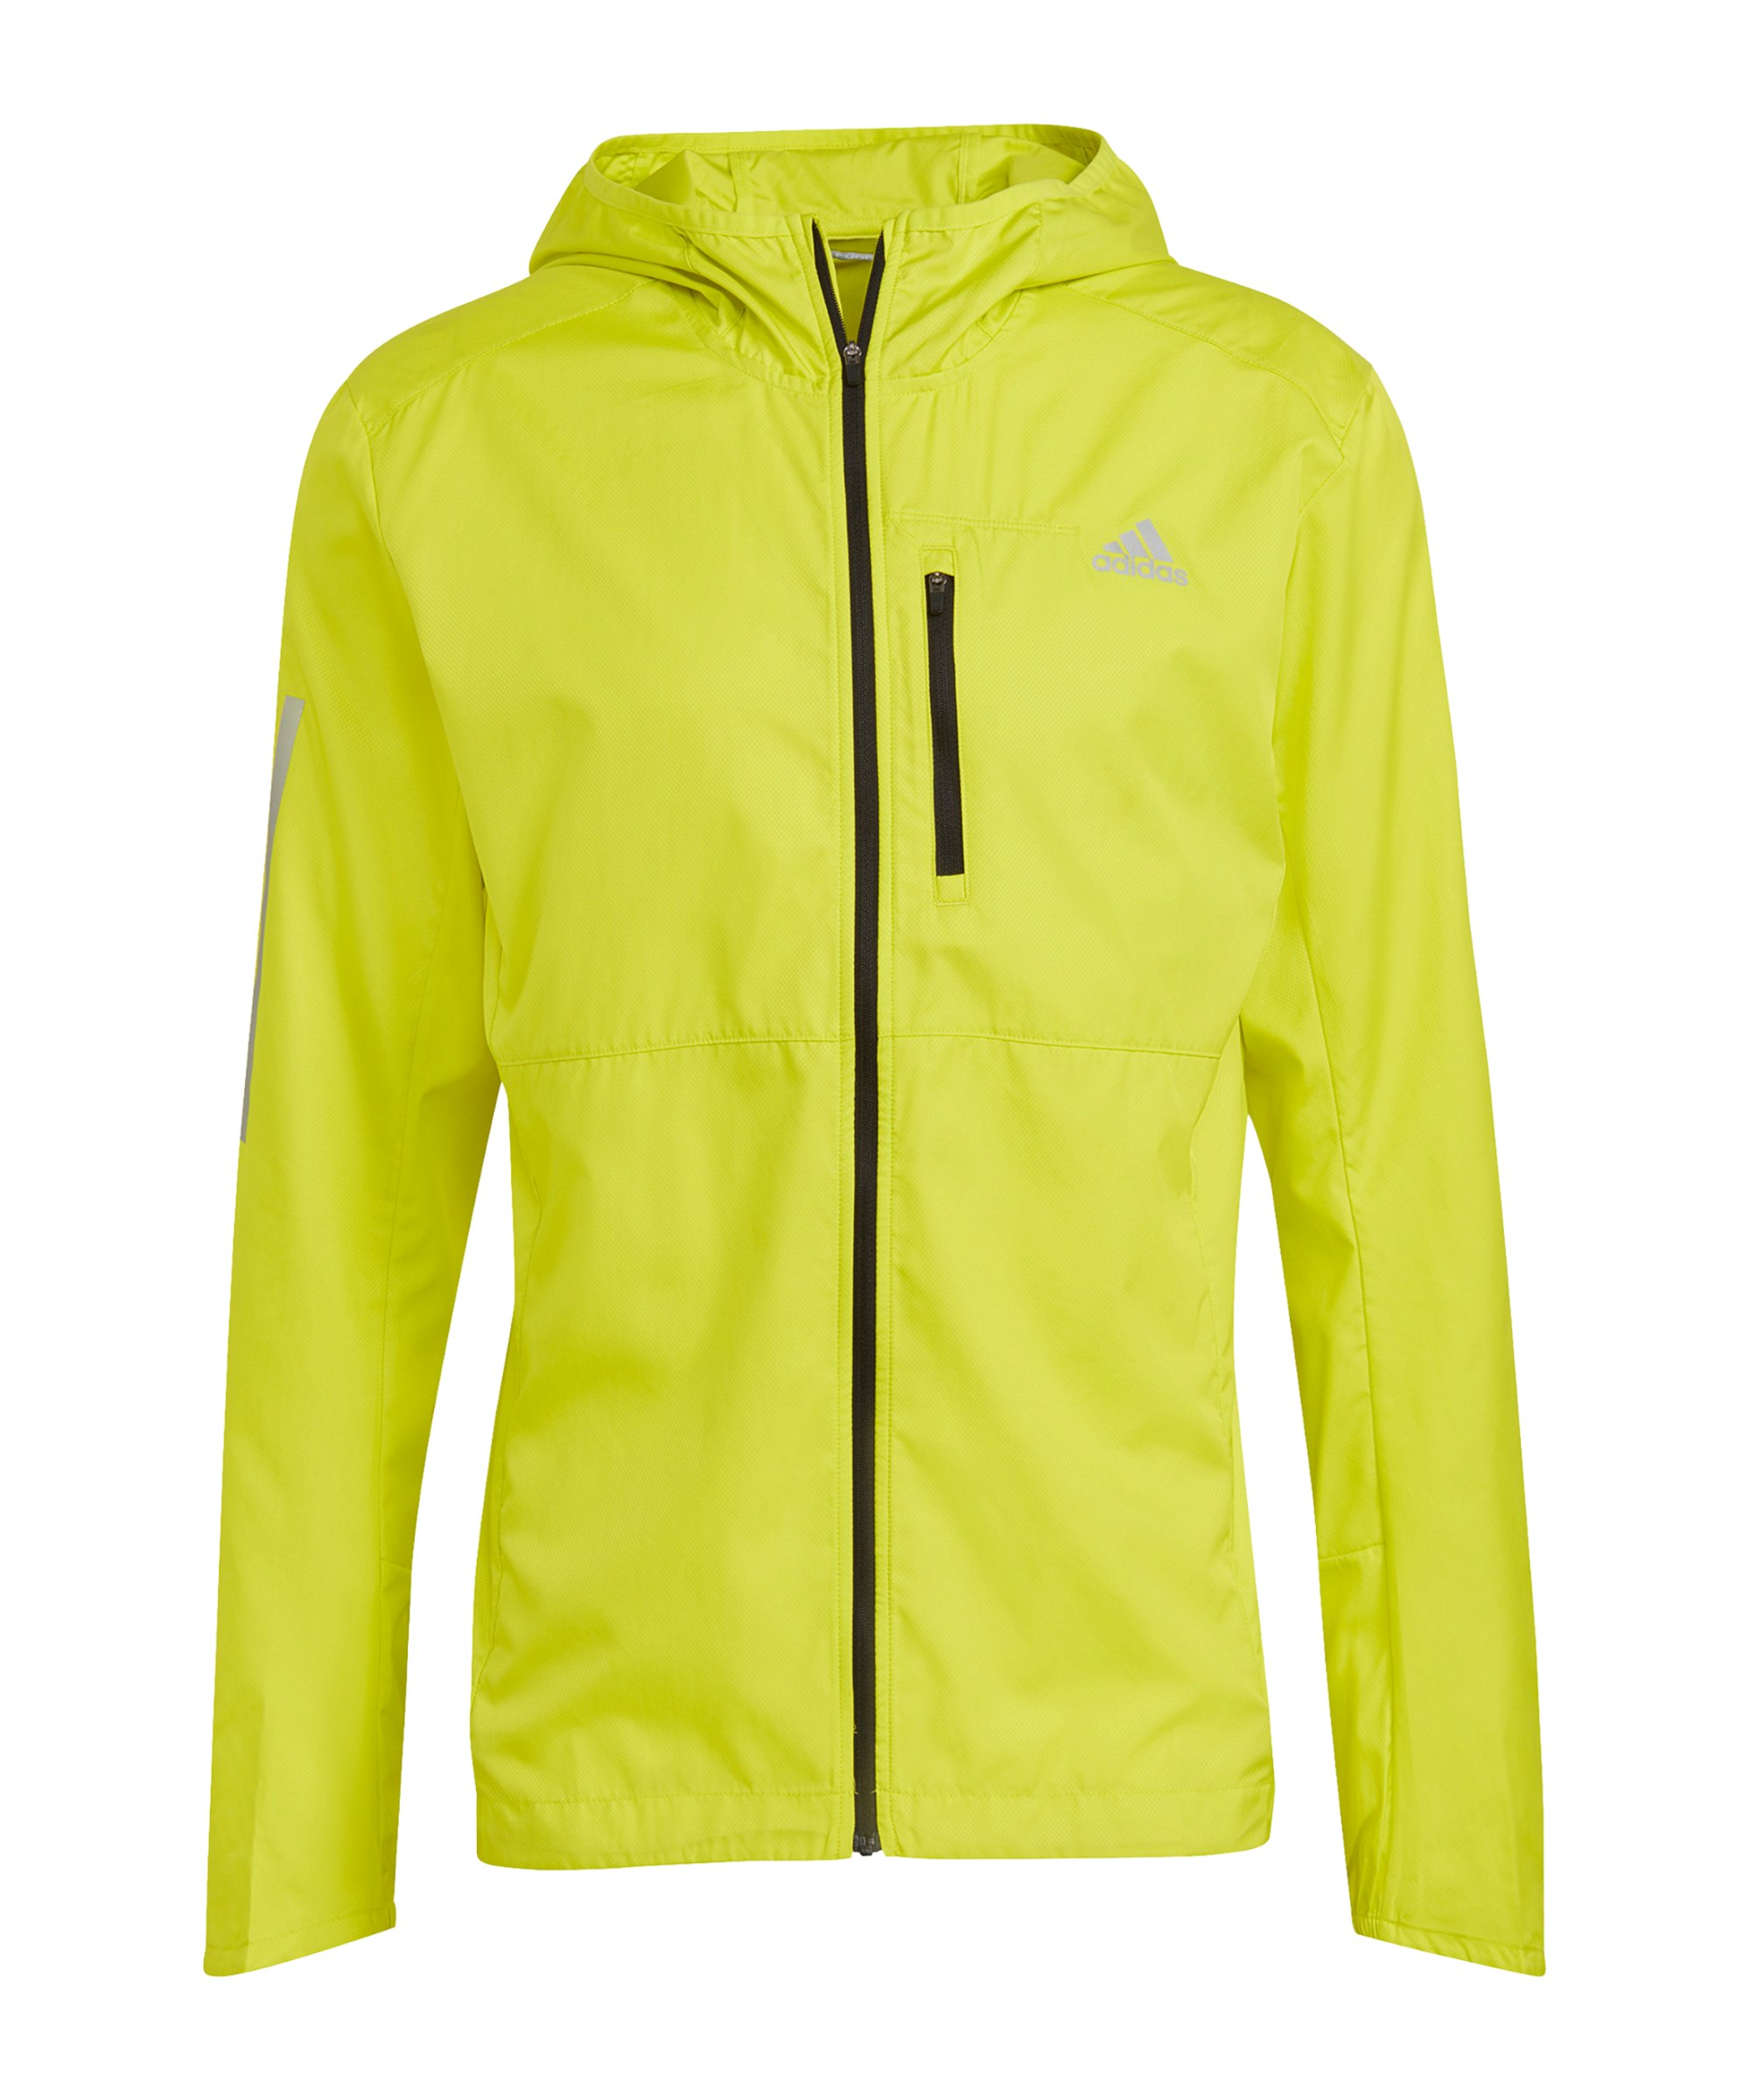 adidas Own The Run Jacke Running Gelb - gelb